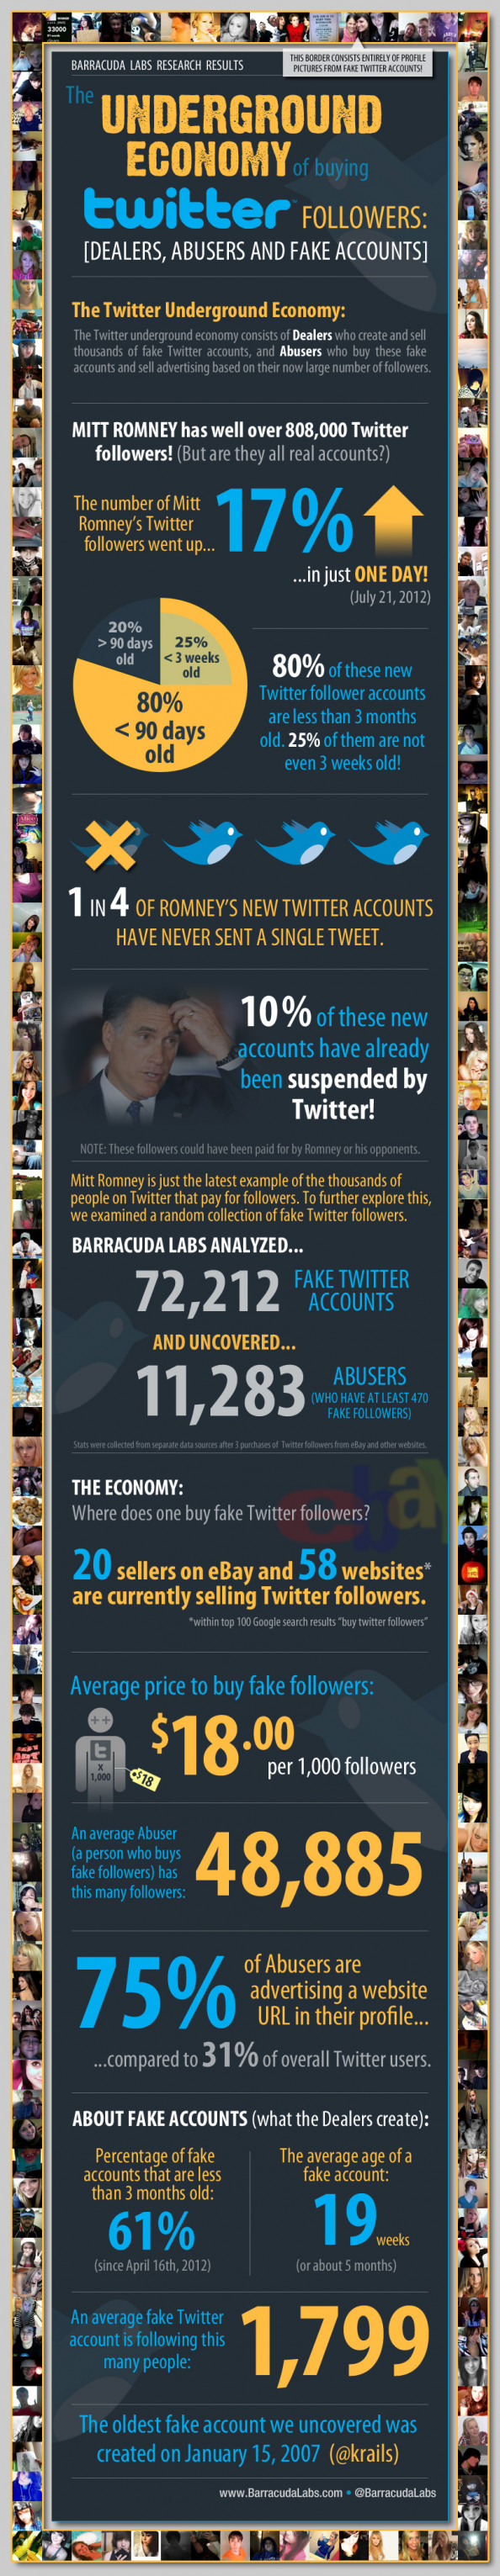 The Underground Twitter Economy: Buying And Selling Followers Infographic